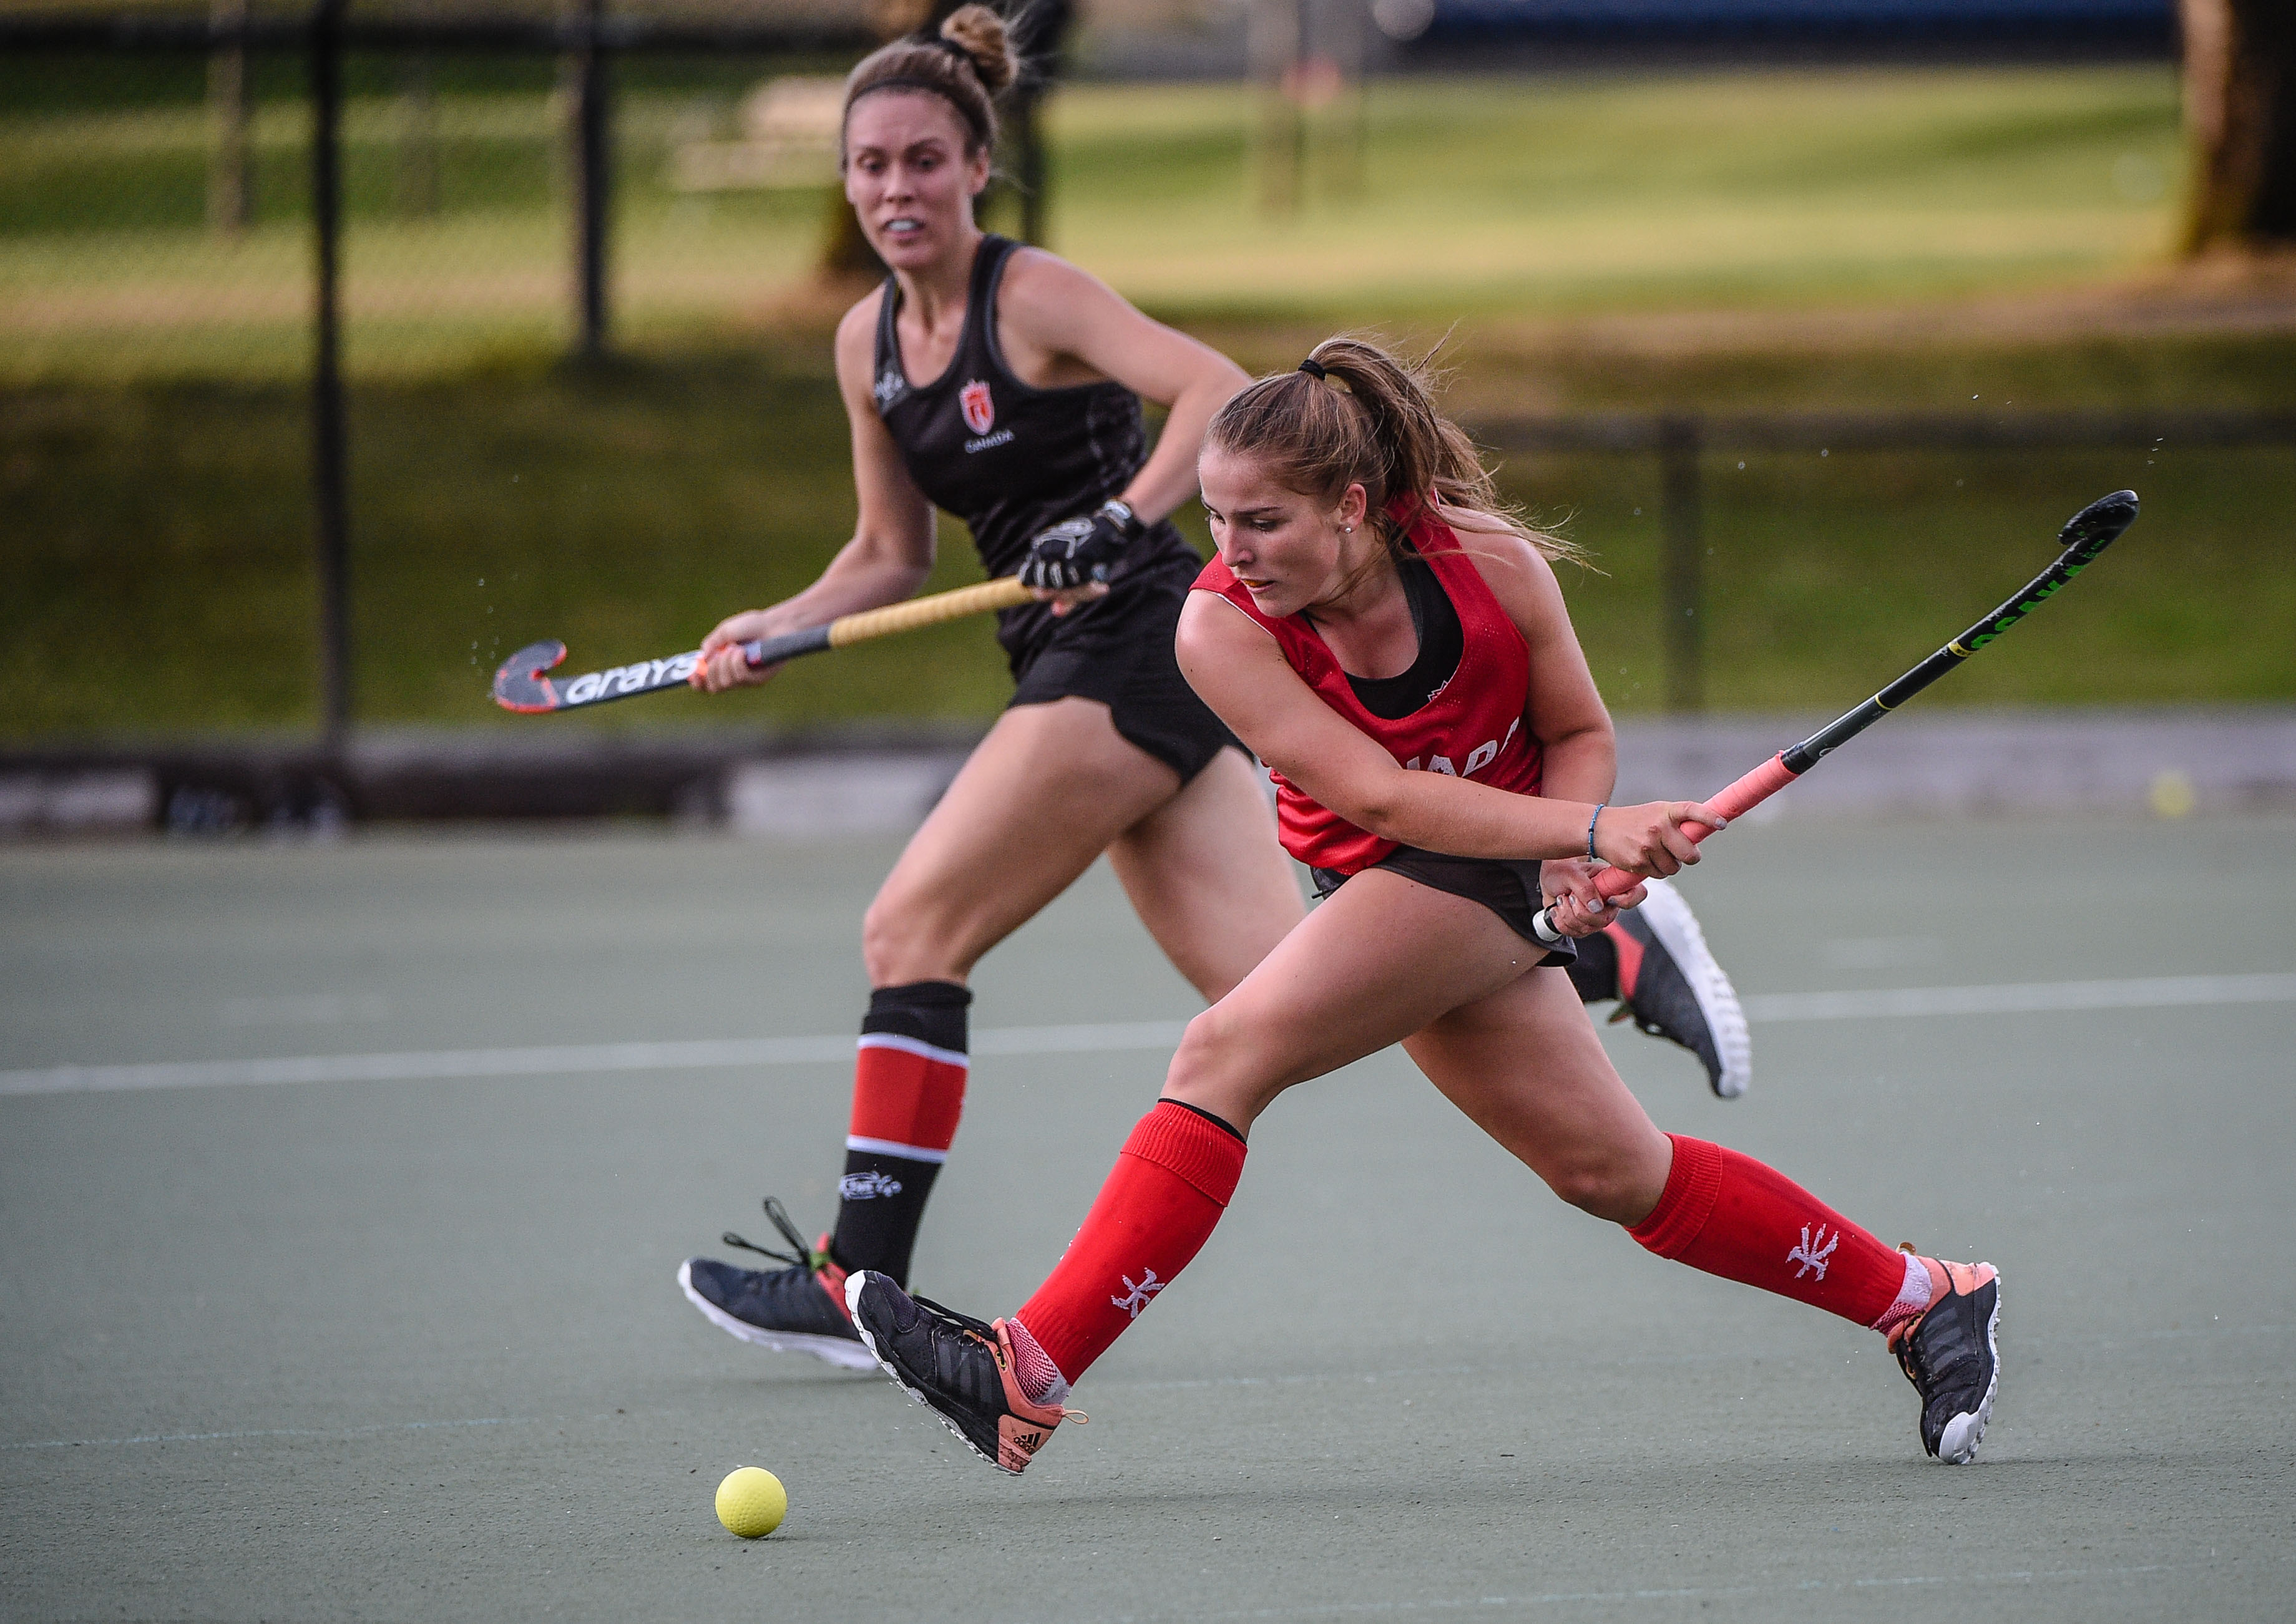 Women S National Team 2018 Chile Tour Roster Field Hockey Canada